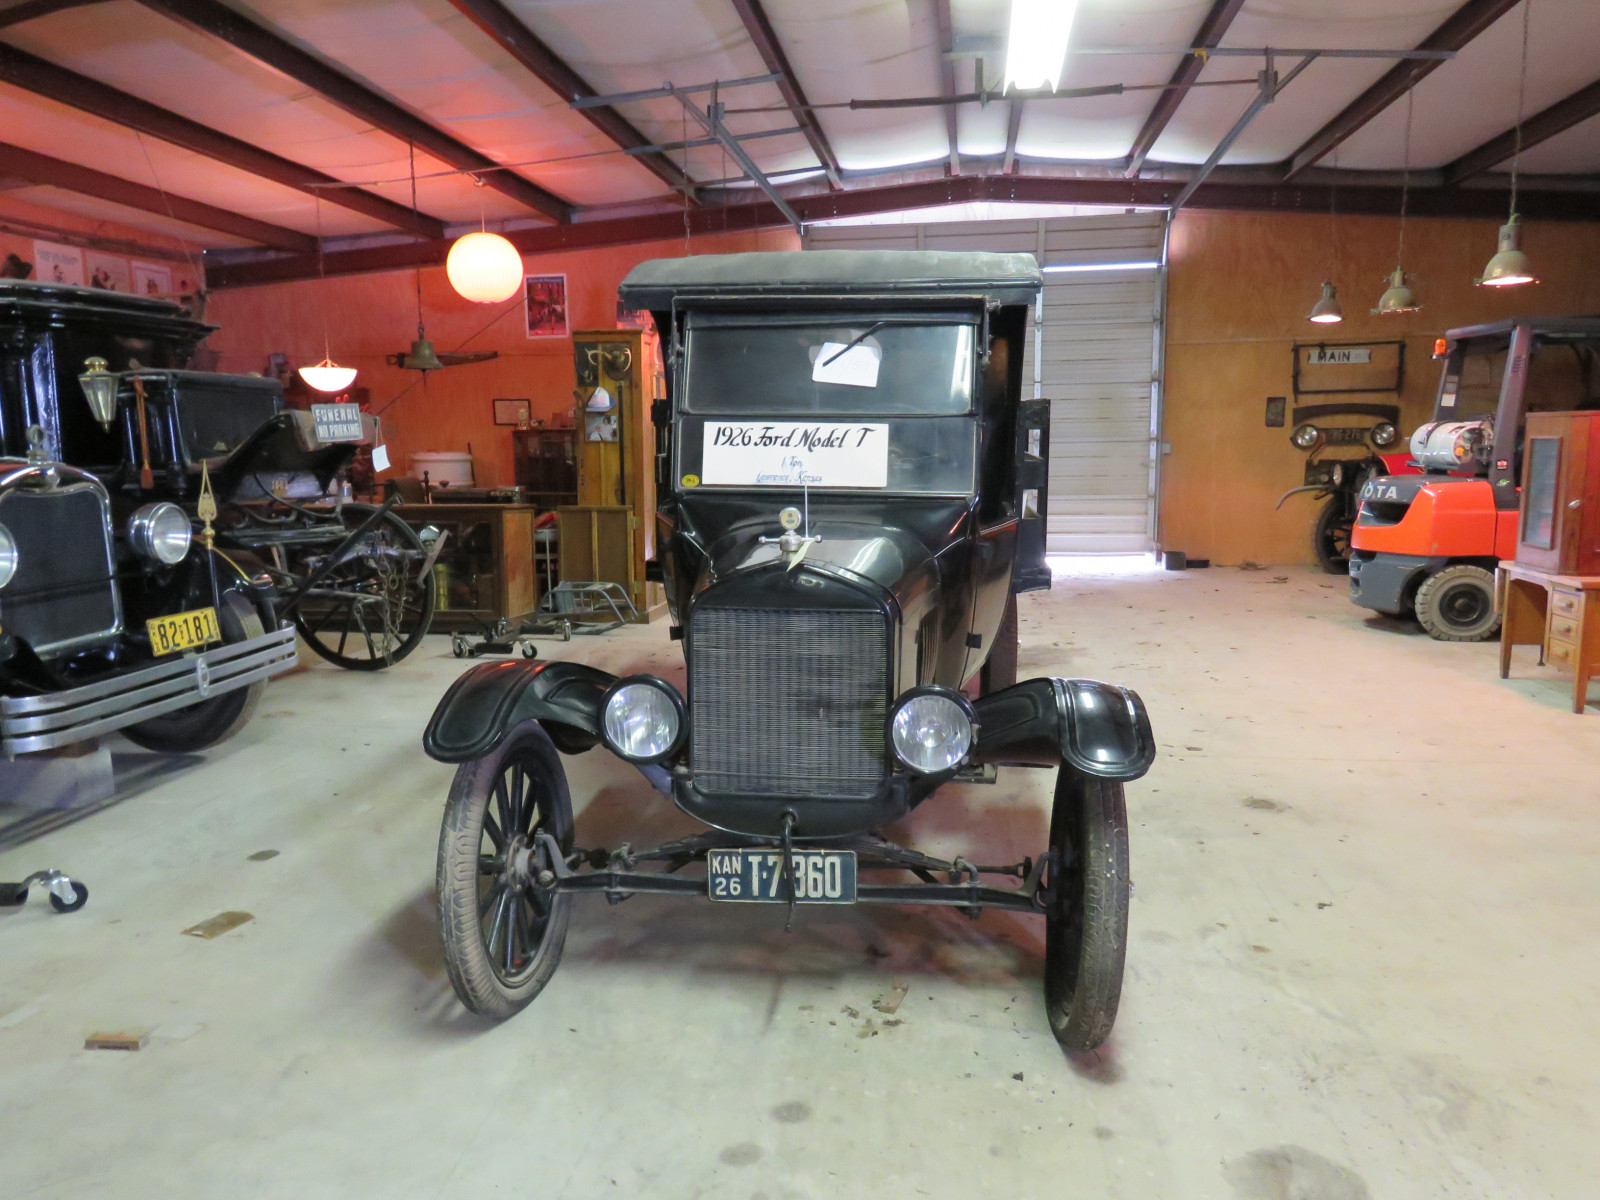 1926 Ford Model T Stakebed Truck - Image 2